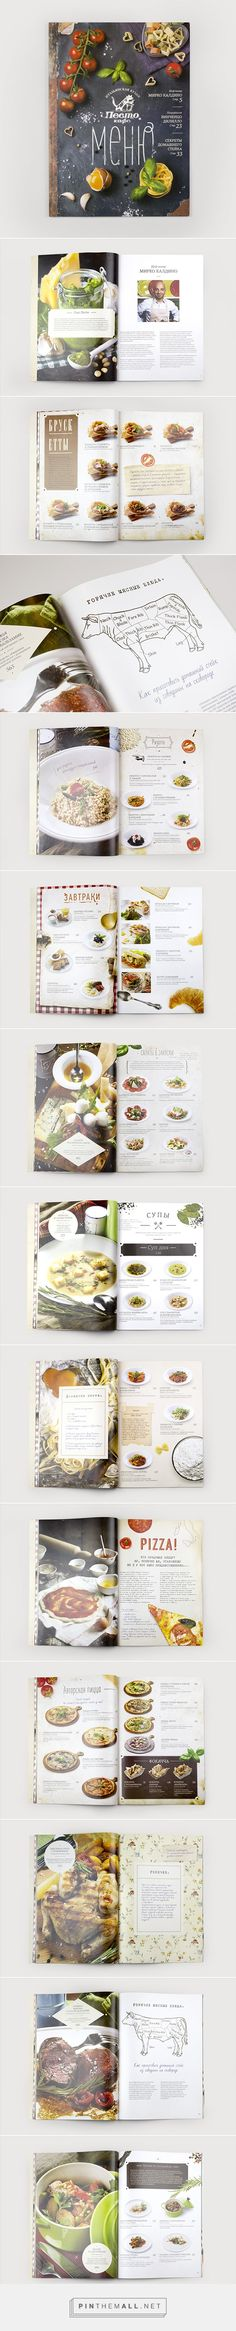 "Design of a menu for an Italian restaurant ""Pesto Cafe"" placed in Moscow. The menu is like a magazine that shows dishes, information about the recipes of Italian cuisine and Italian traditions. Photos of dishes for menu by Nikita K… Menu Layout, Print Layout, Book Layout, Restaurant Menu Design, Restaurant Branding, Editorial Layout, Editorial Design, Food Catalog, Catalogue Layout"